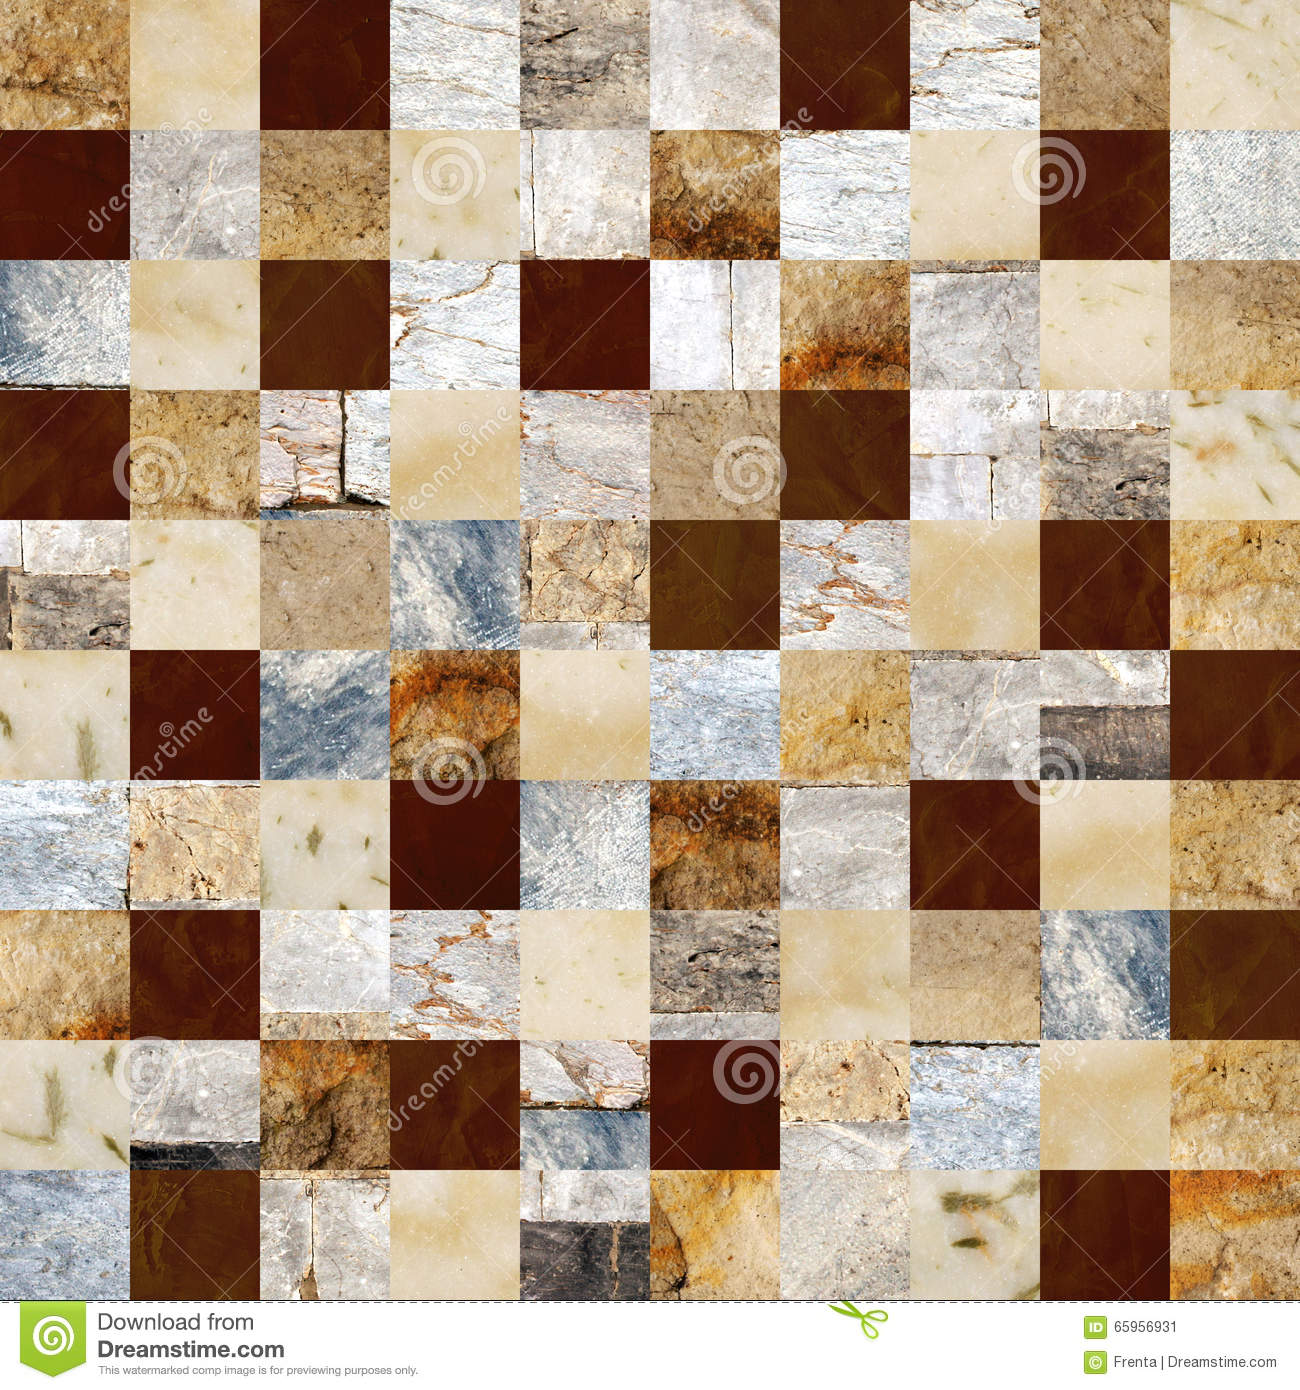 Different Colors Of Marble : Seamless background with marble and stone patterns stock